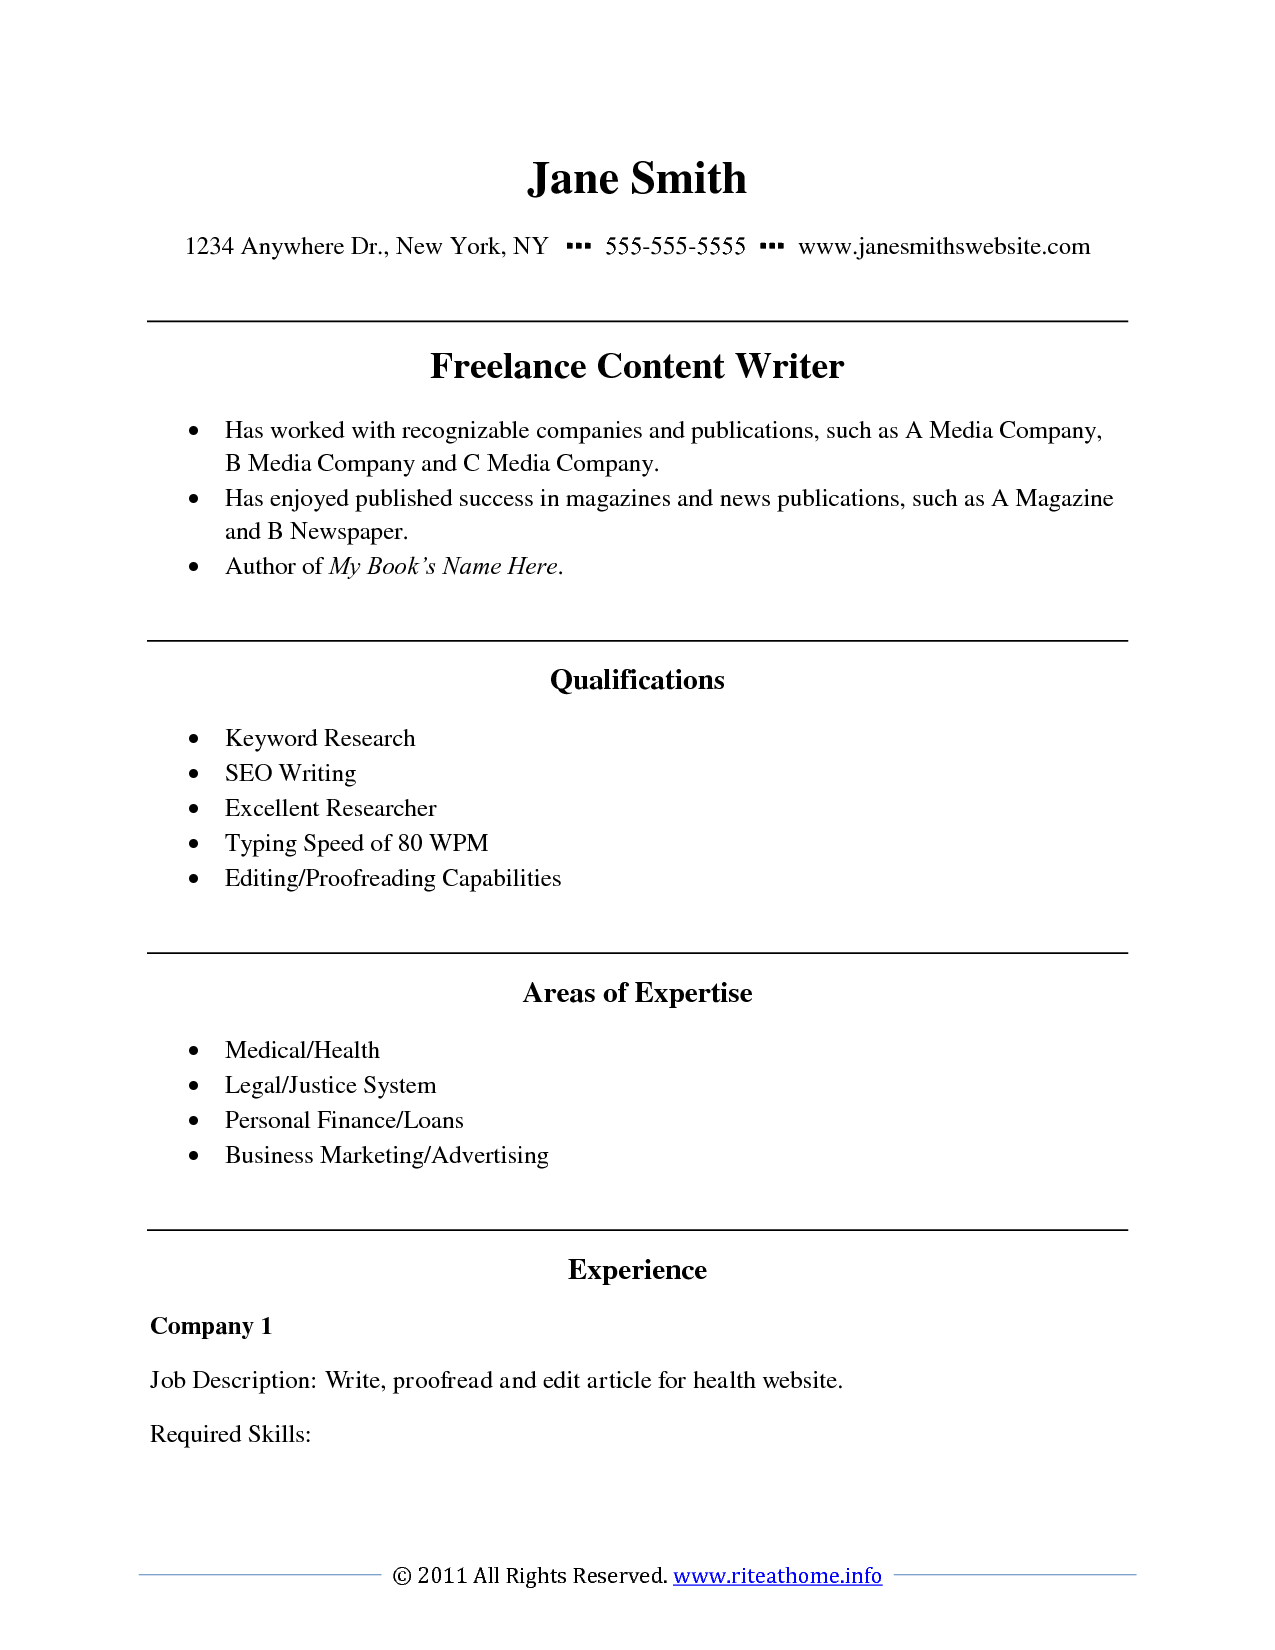 Resume Writing Examples Sample Resumes HDWriting A Resume Cover Letter  Examples  Resume Writing